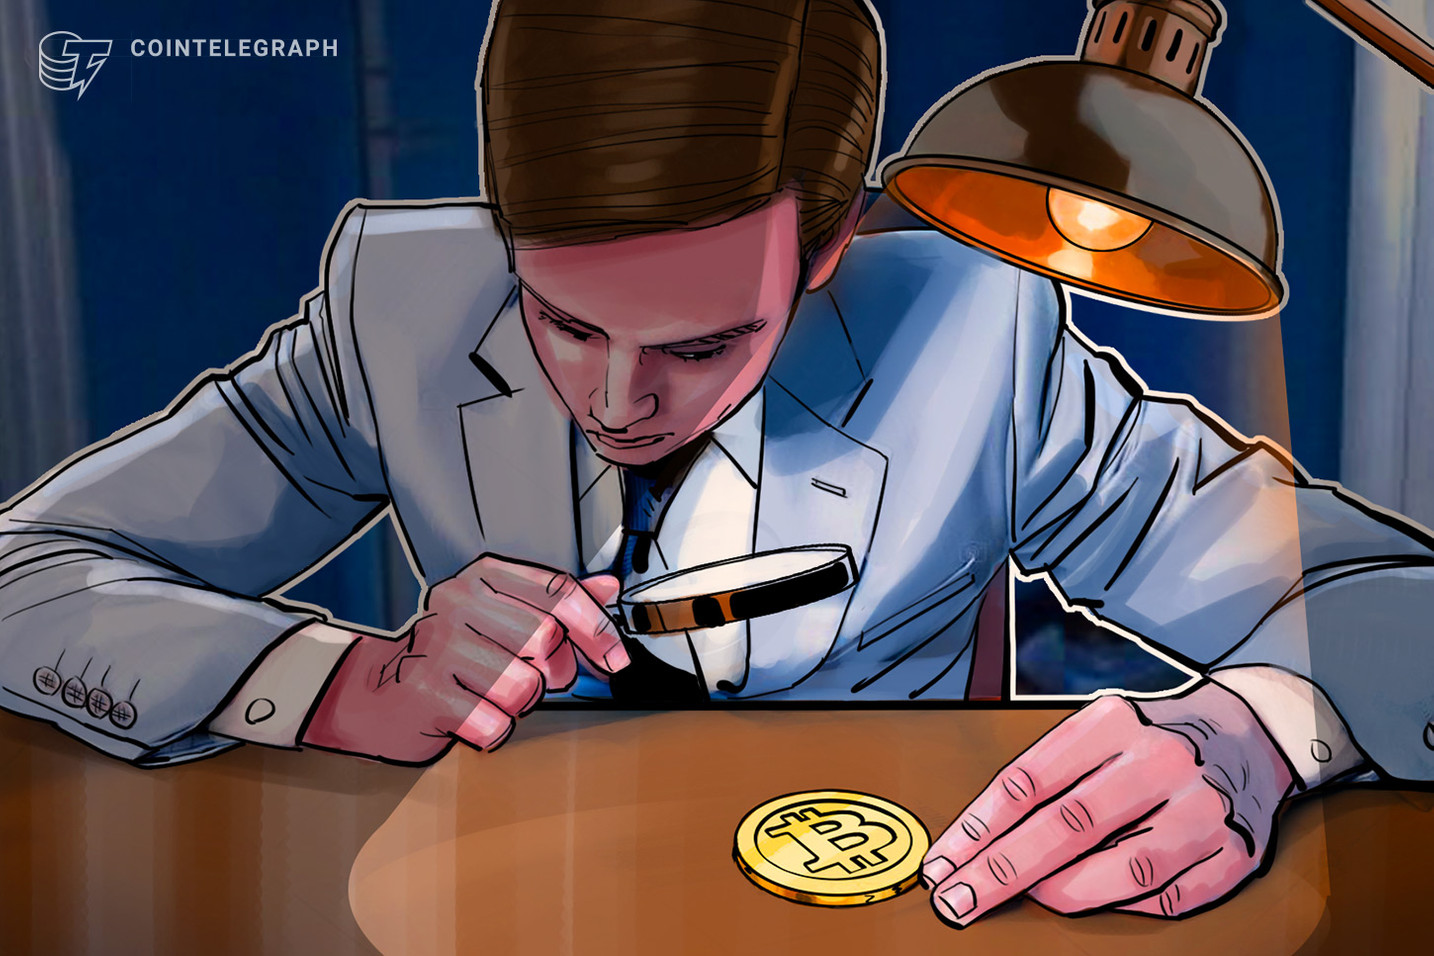 Digital Assets Data CEO says mainstream finance still doesn't trust Bitcoin